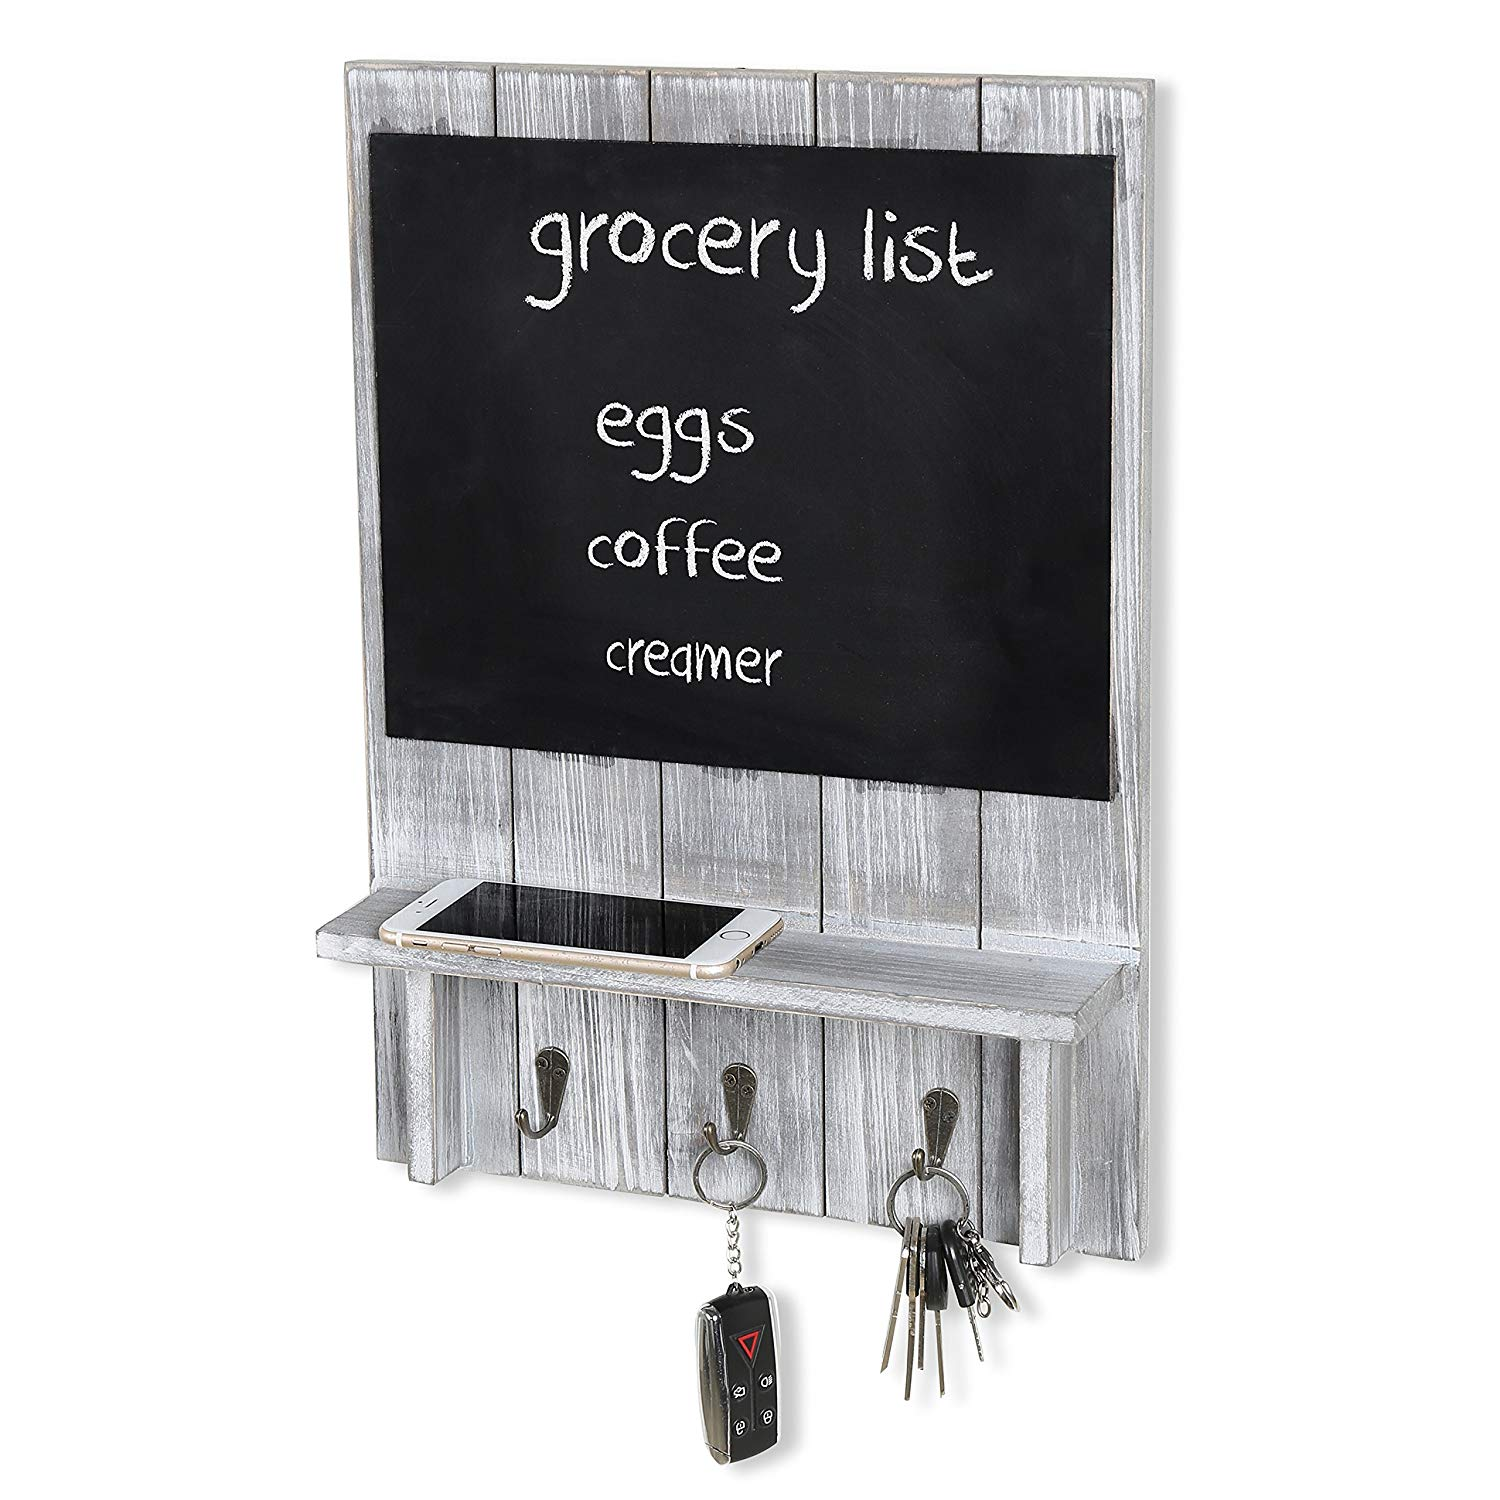 Rustic Dark Brown Wood Wall Mounted Mail Sorter Key Hook Organizer Rack with Chalkboard Sign